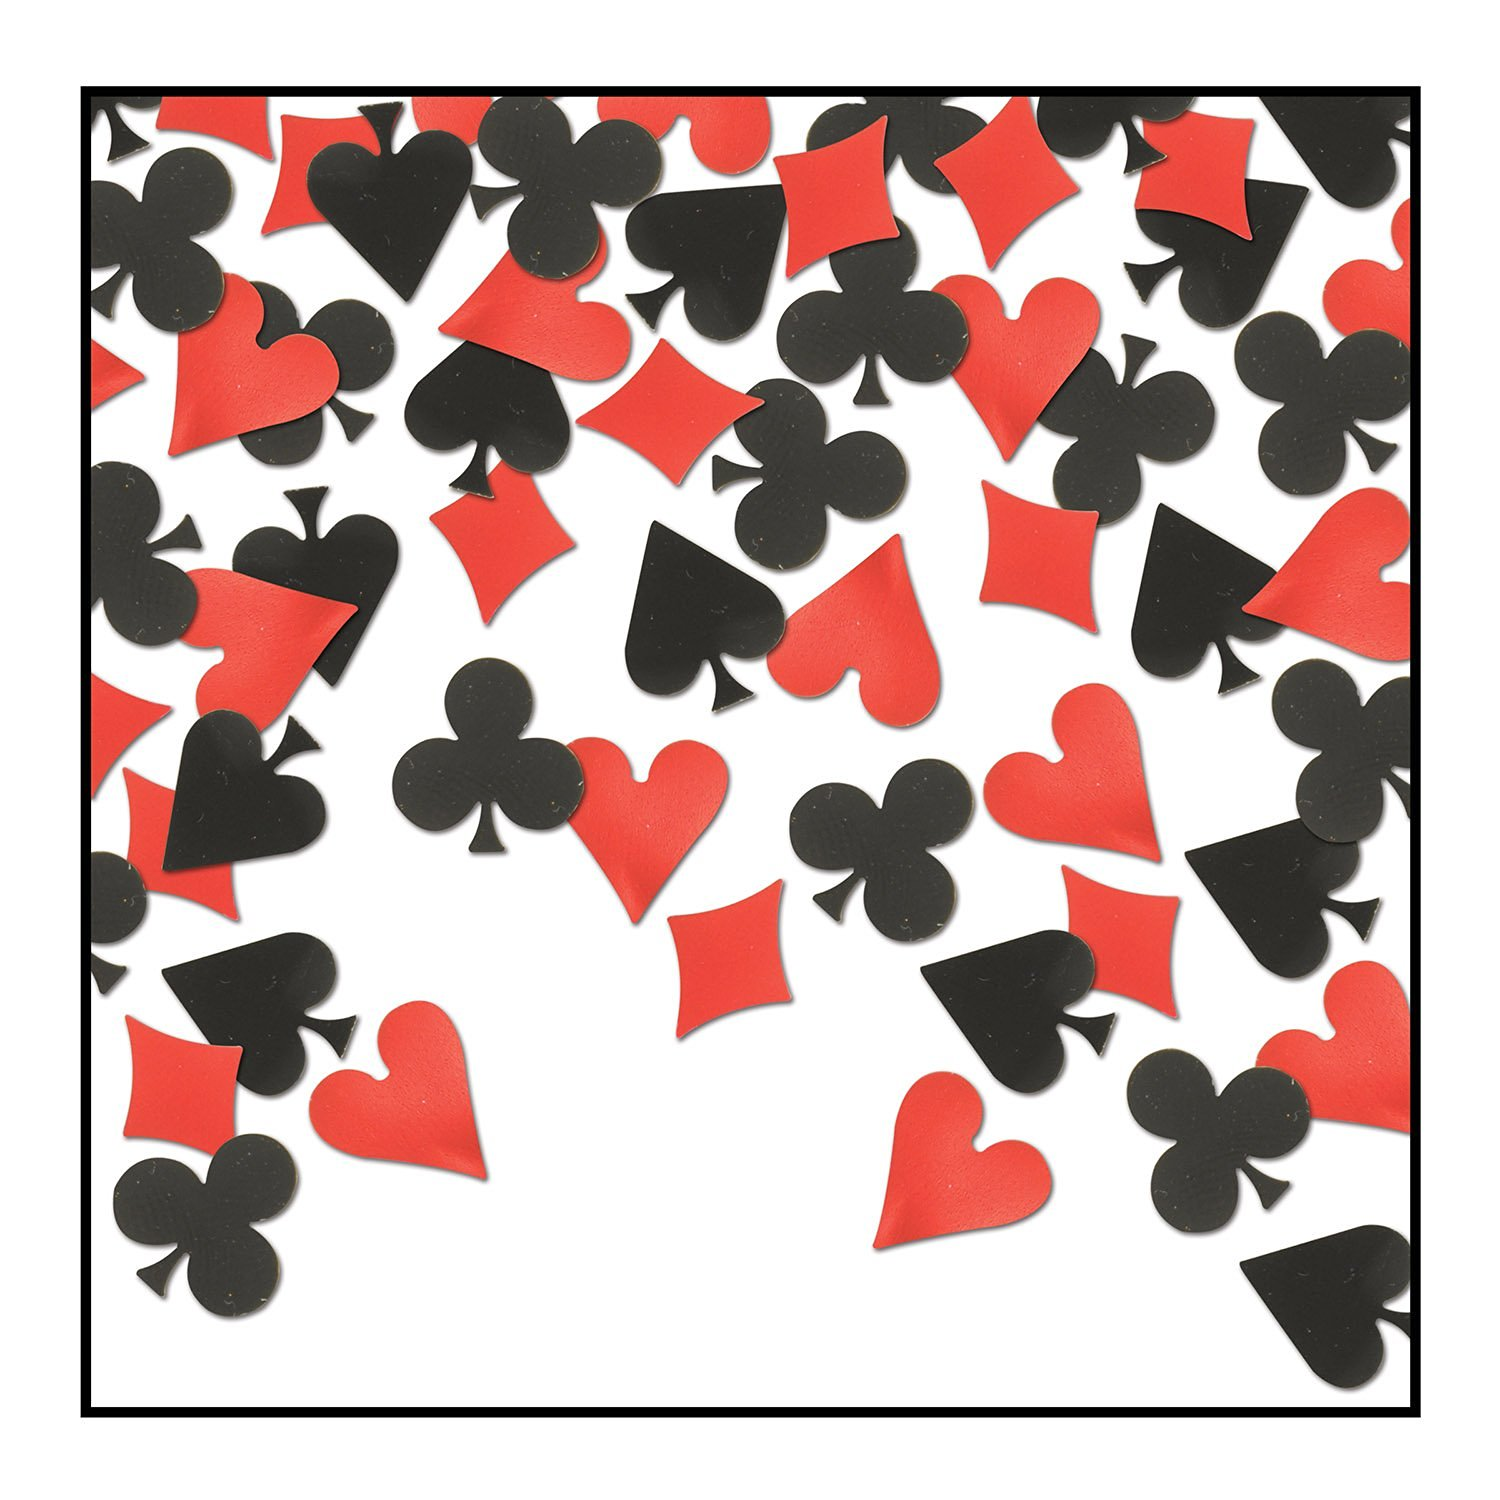 Total of 3 Ounces Confetti Beistle SCN083AZ6 6 Packages Western Party Confetti 0.5 Ounces In Package